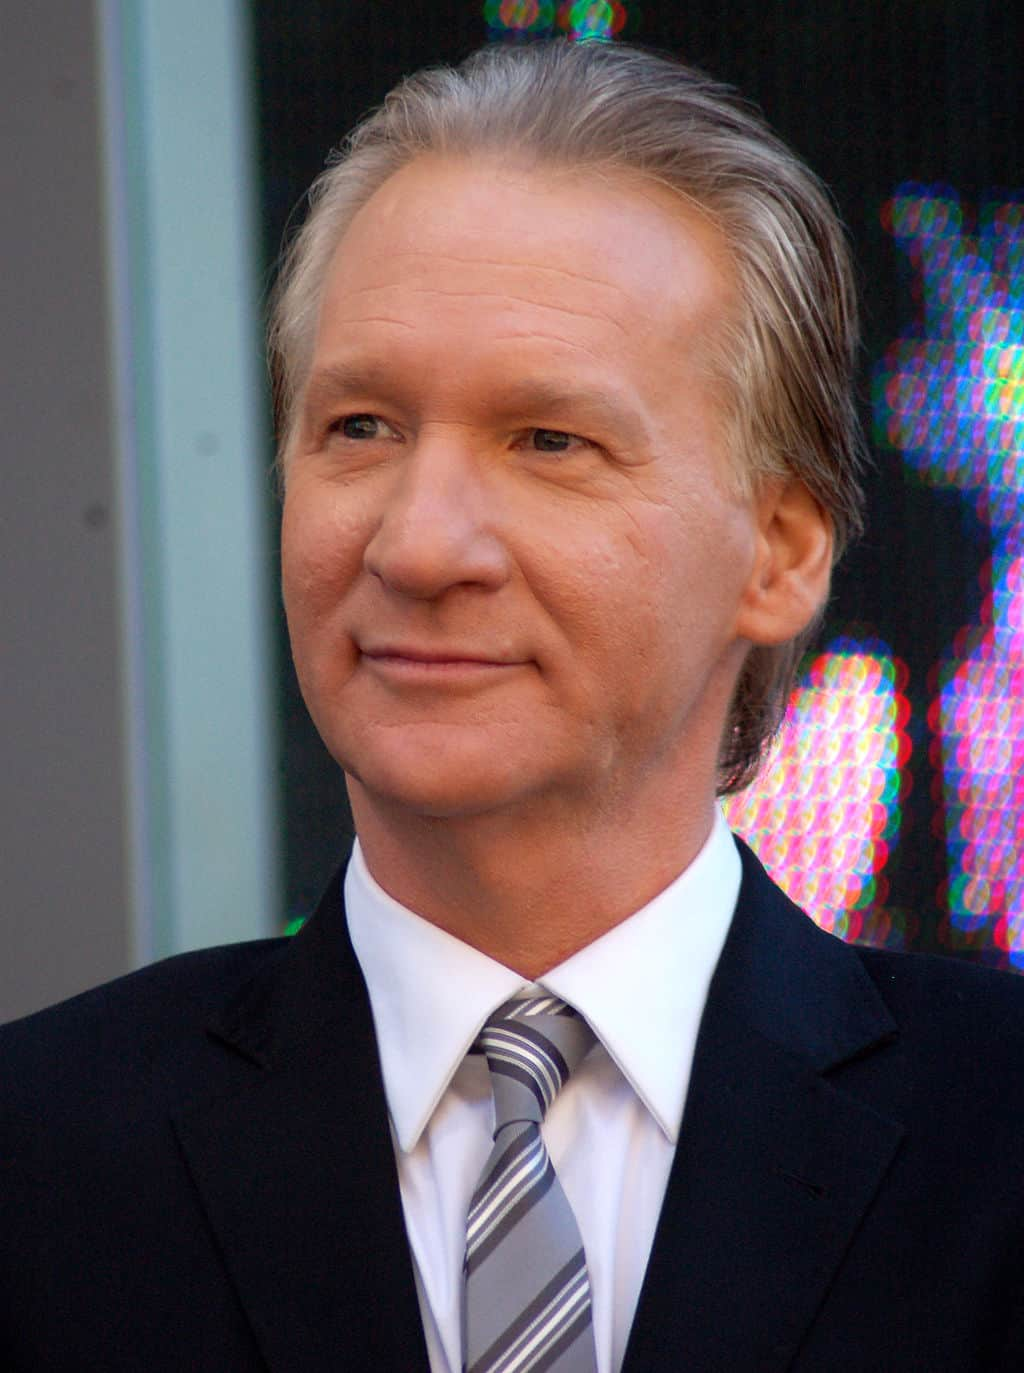 Image Credit: Wikipedia / Flickr / Angela George - Bill Maher